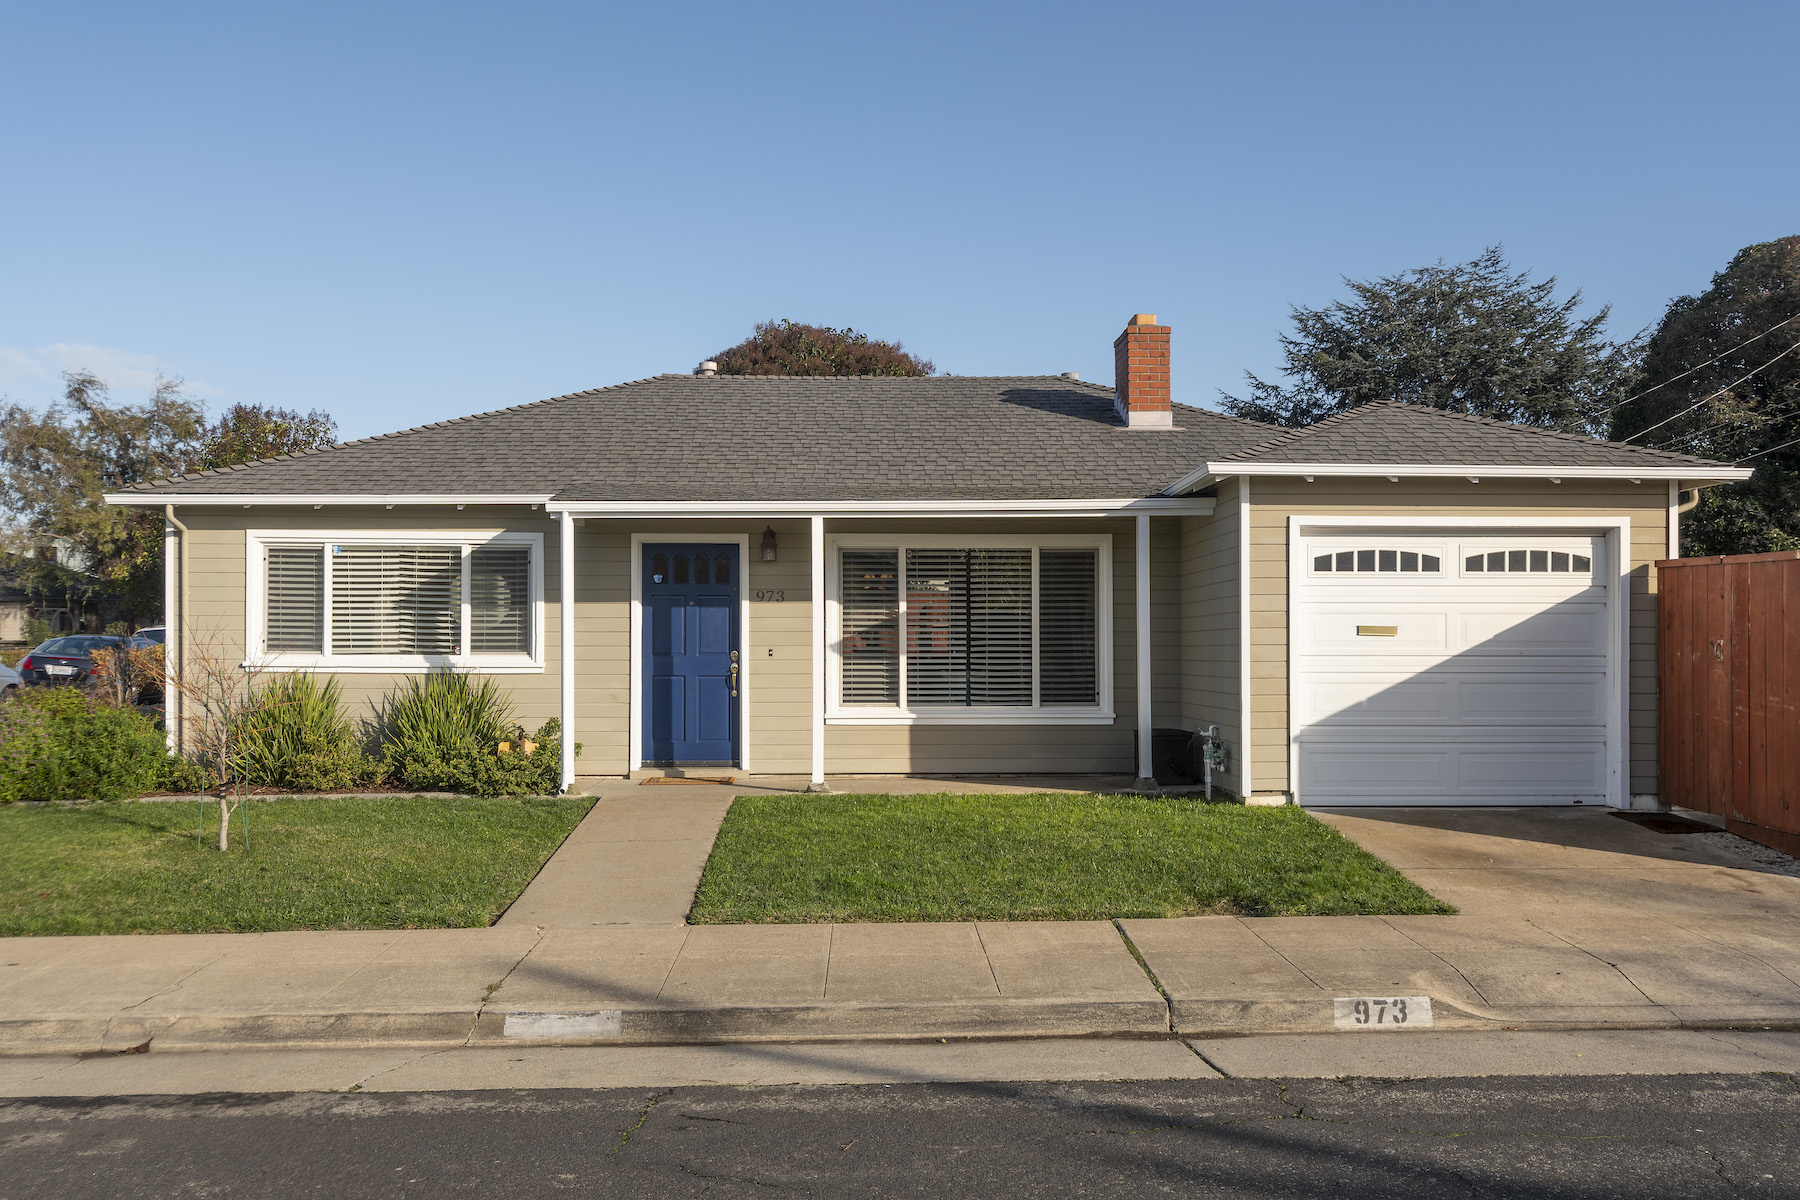 Single Family Home for Active at Tastefully Updated San Mateo Home 973 Daisy Street San Mateo, California 94404 United States